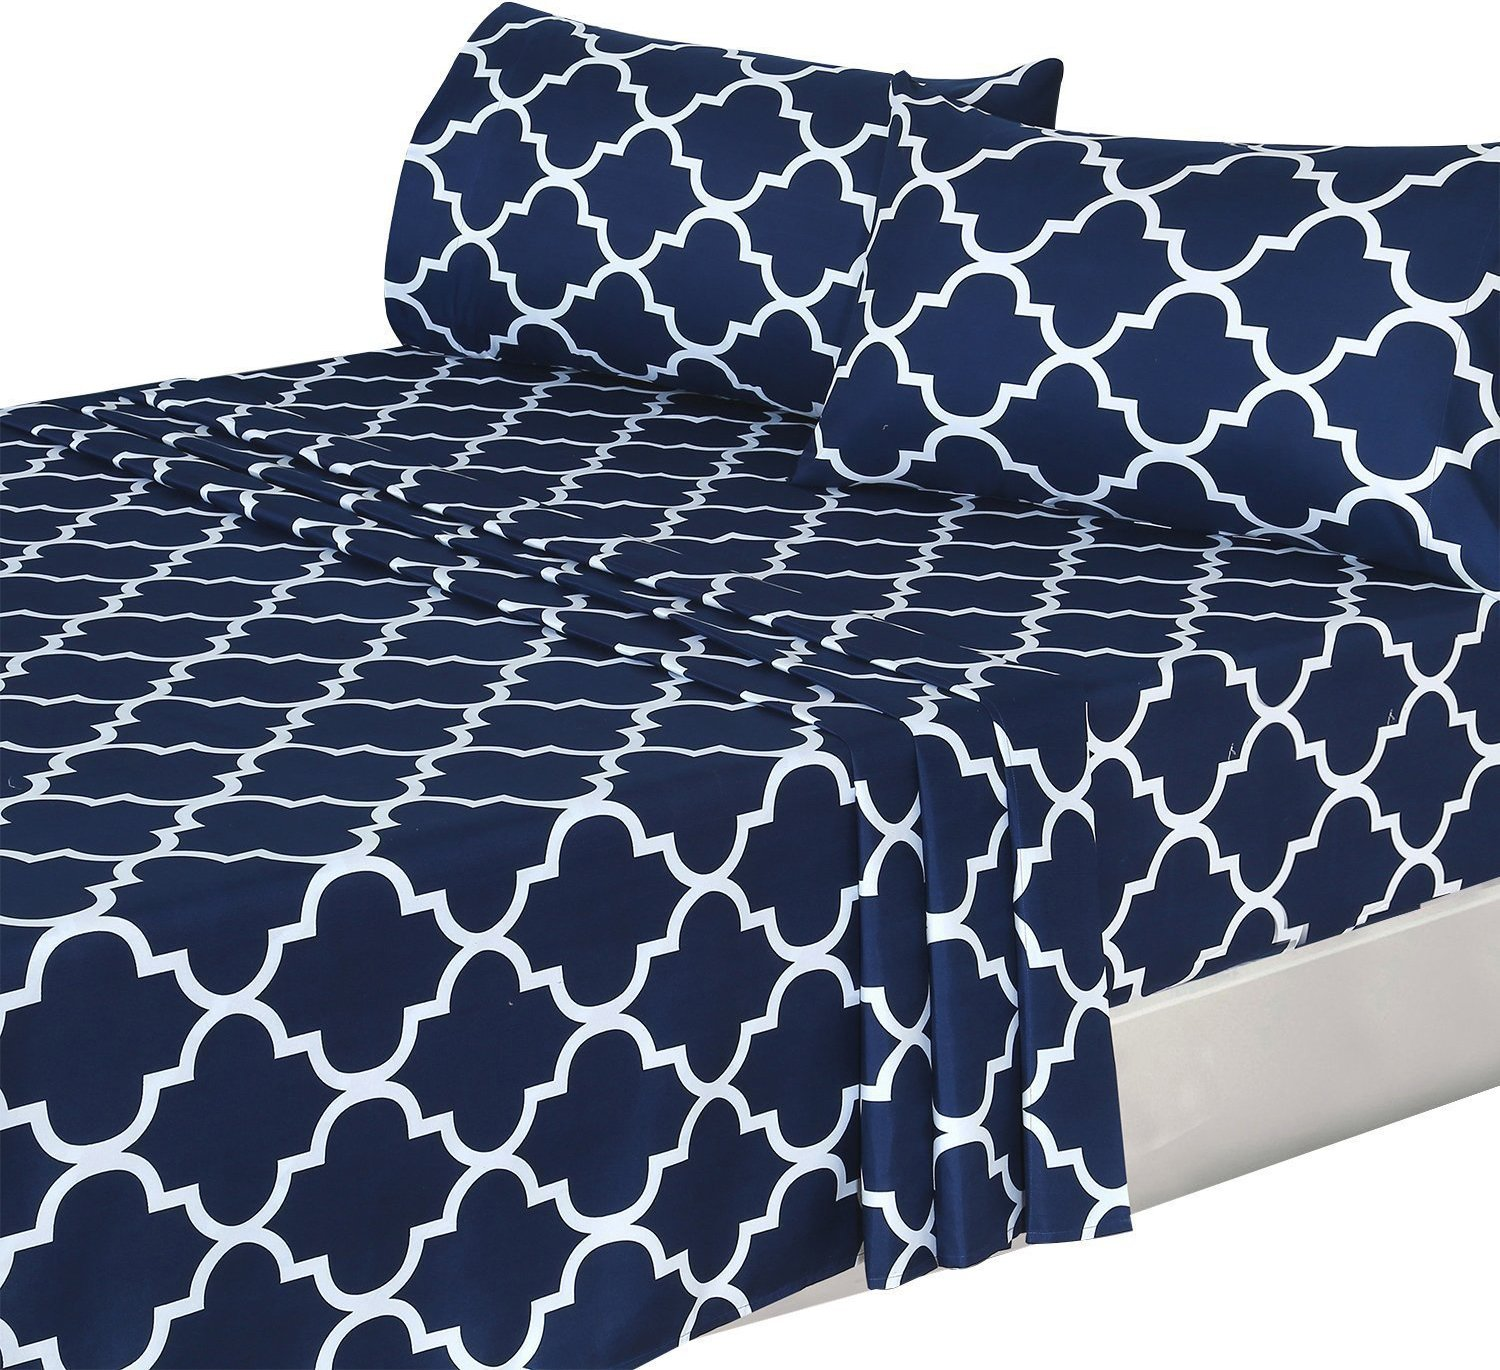 Utopia Bedding 3 Piece Bed Sheets Set (Twin, Navy) - 1 Flat Sheet 1 Fitted Sheet and 1 Pillow Case - Hotel Quality Brushed Velvety Microfiber - Luxurious & Extremely Durable